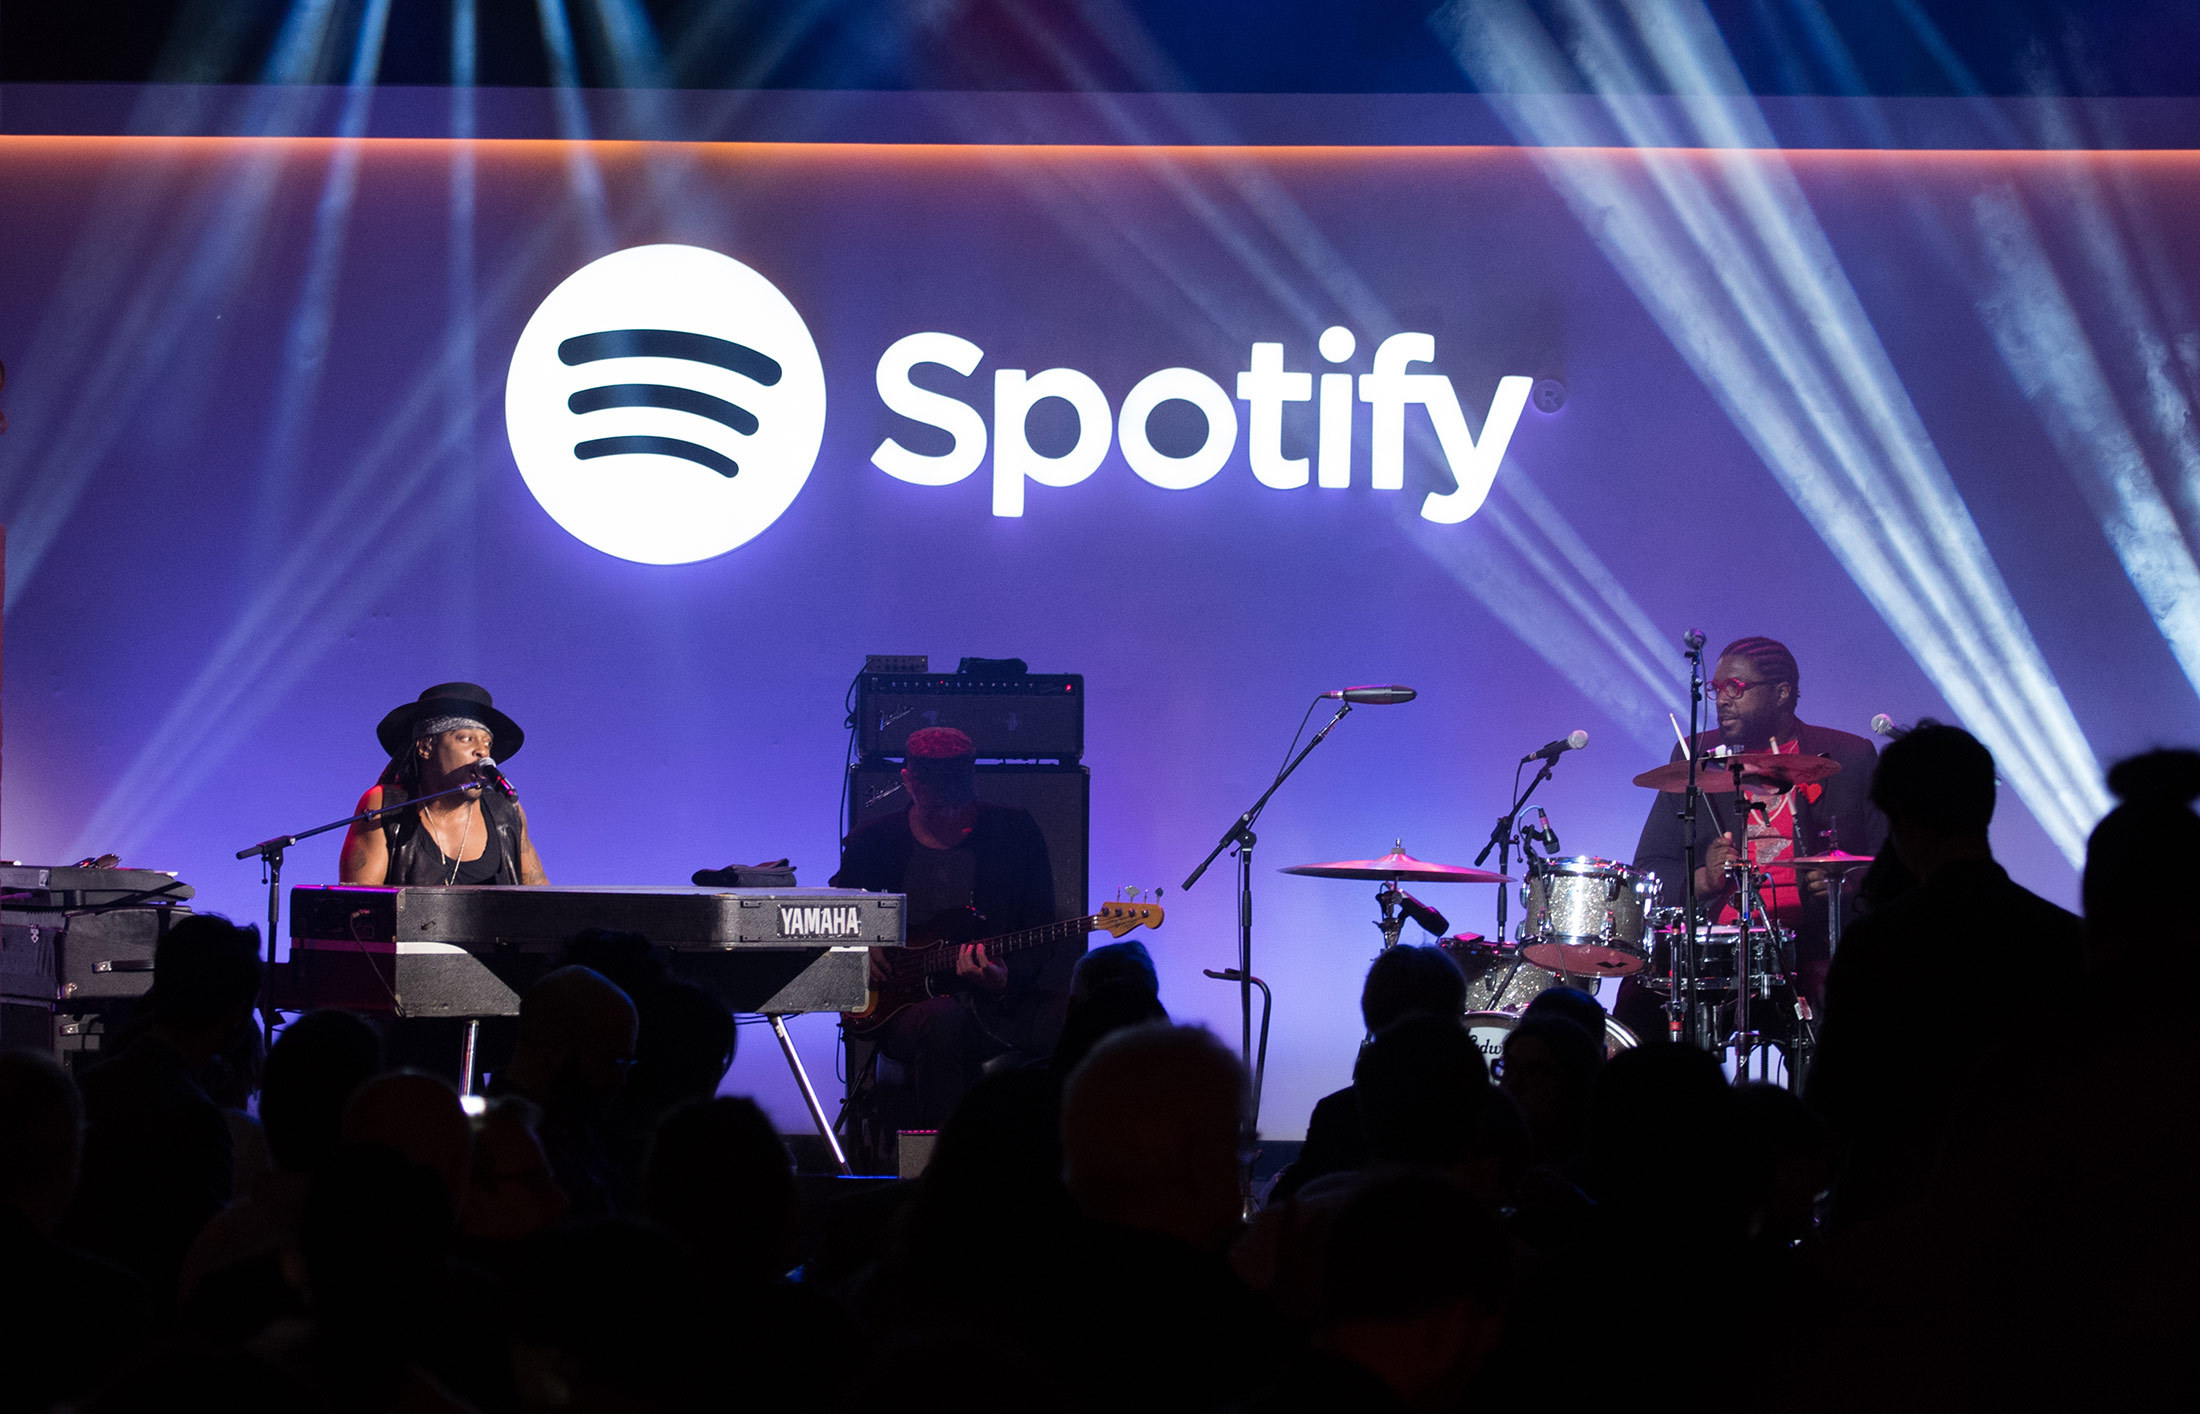 Spotify Says, Apple Being 'Anticompetitive' To Protect